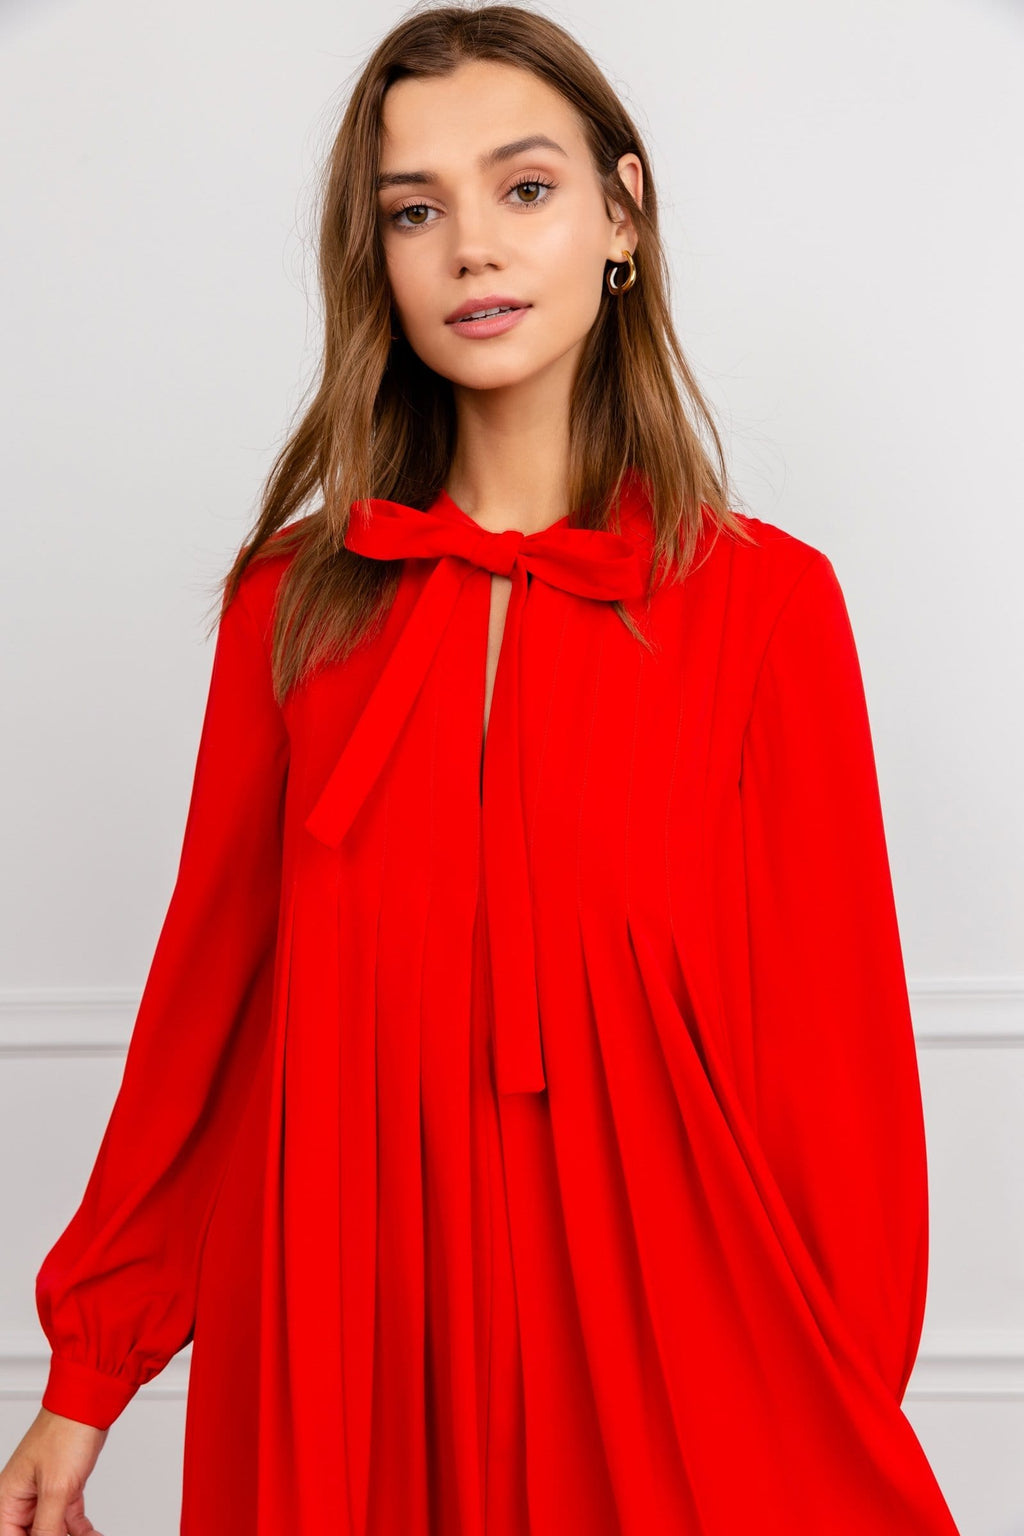 Scarlet Red Tent Dress by J.ING Women's Dresses Back to School Style